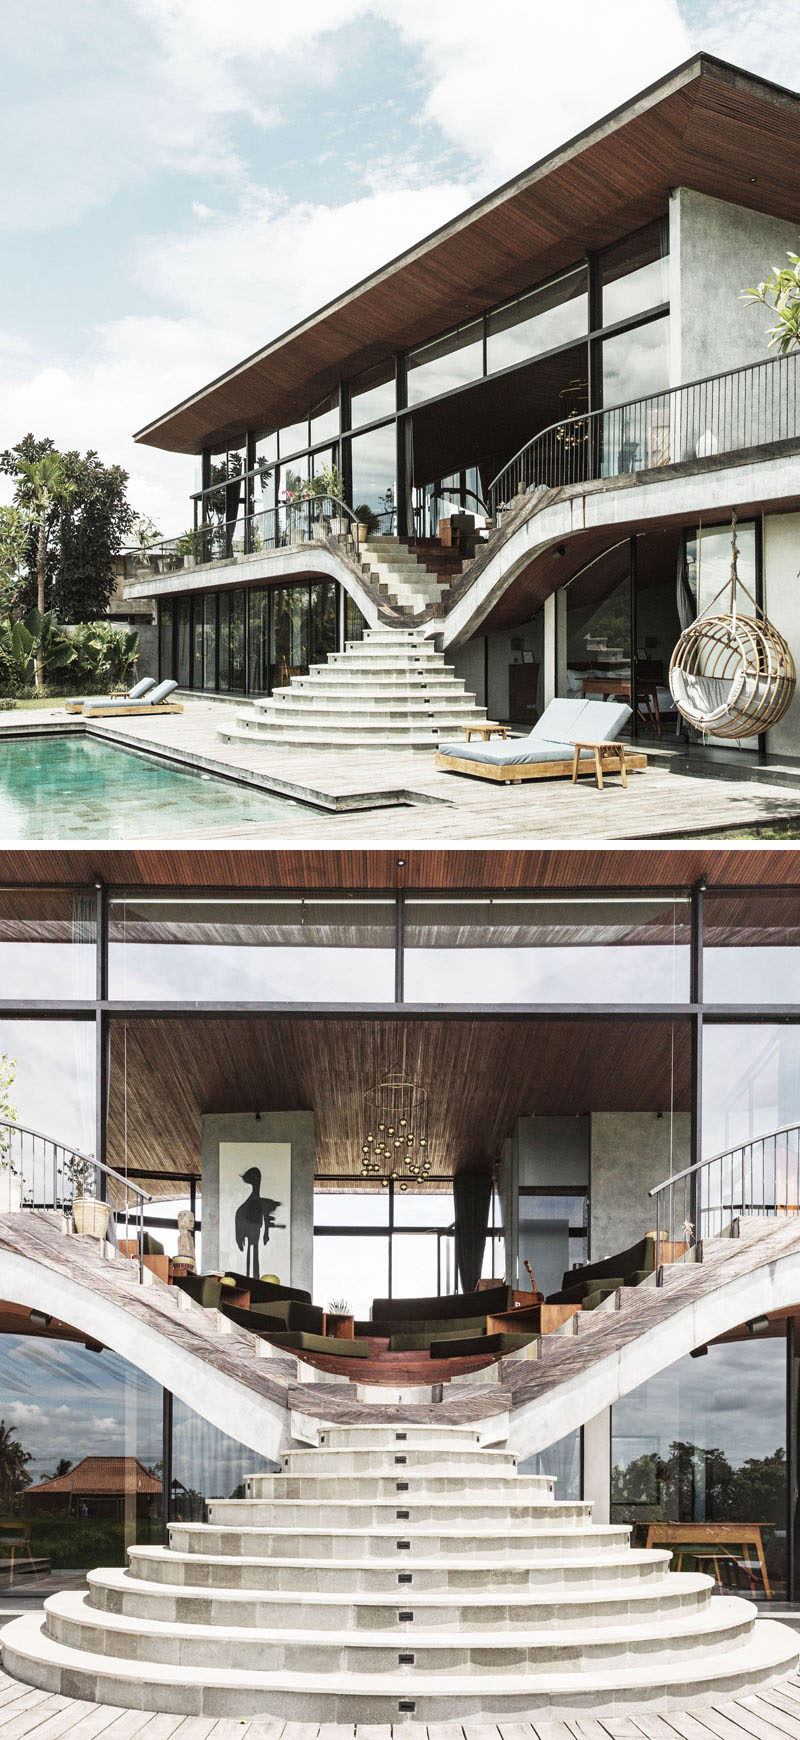 At the rear of this modern house, the swimming pool and lower level of the home are connected to the upper level by a set of curved stairs. #Stairs #StairDesign #ModernHouse